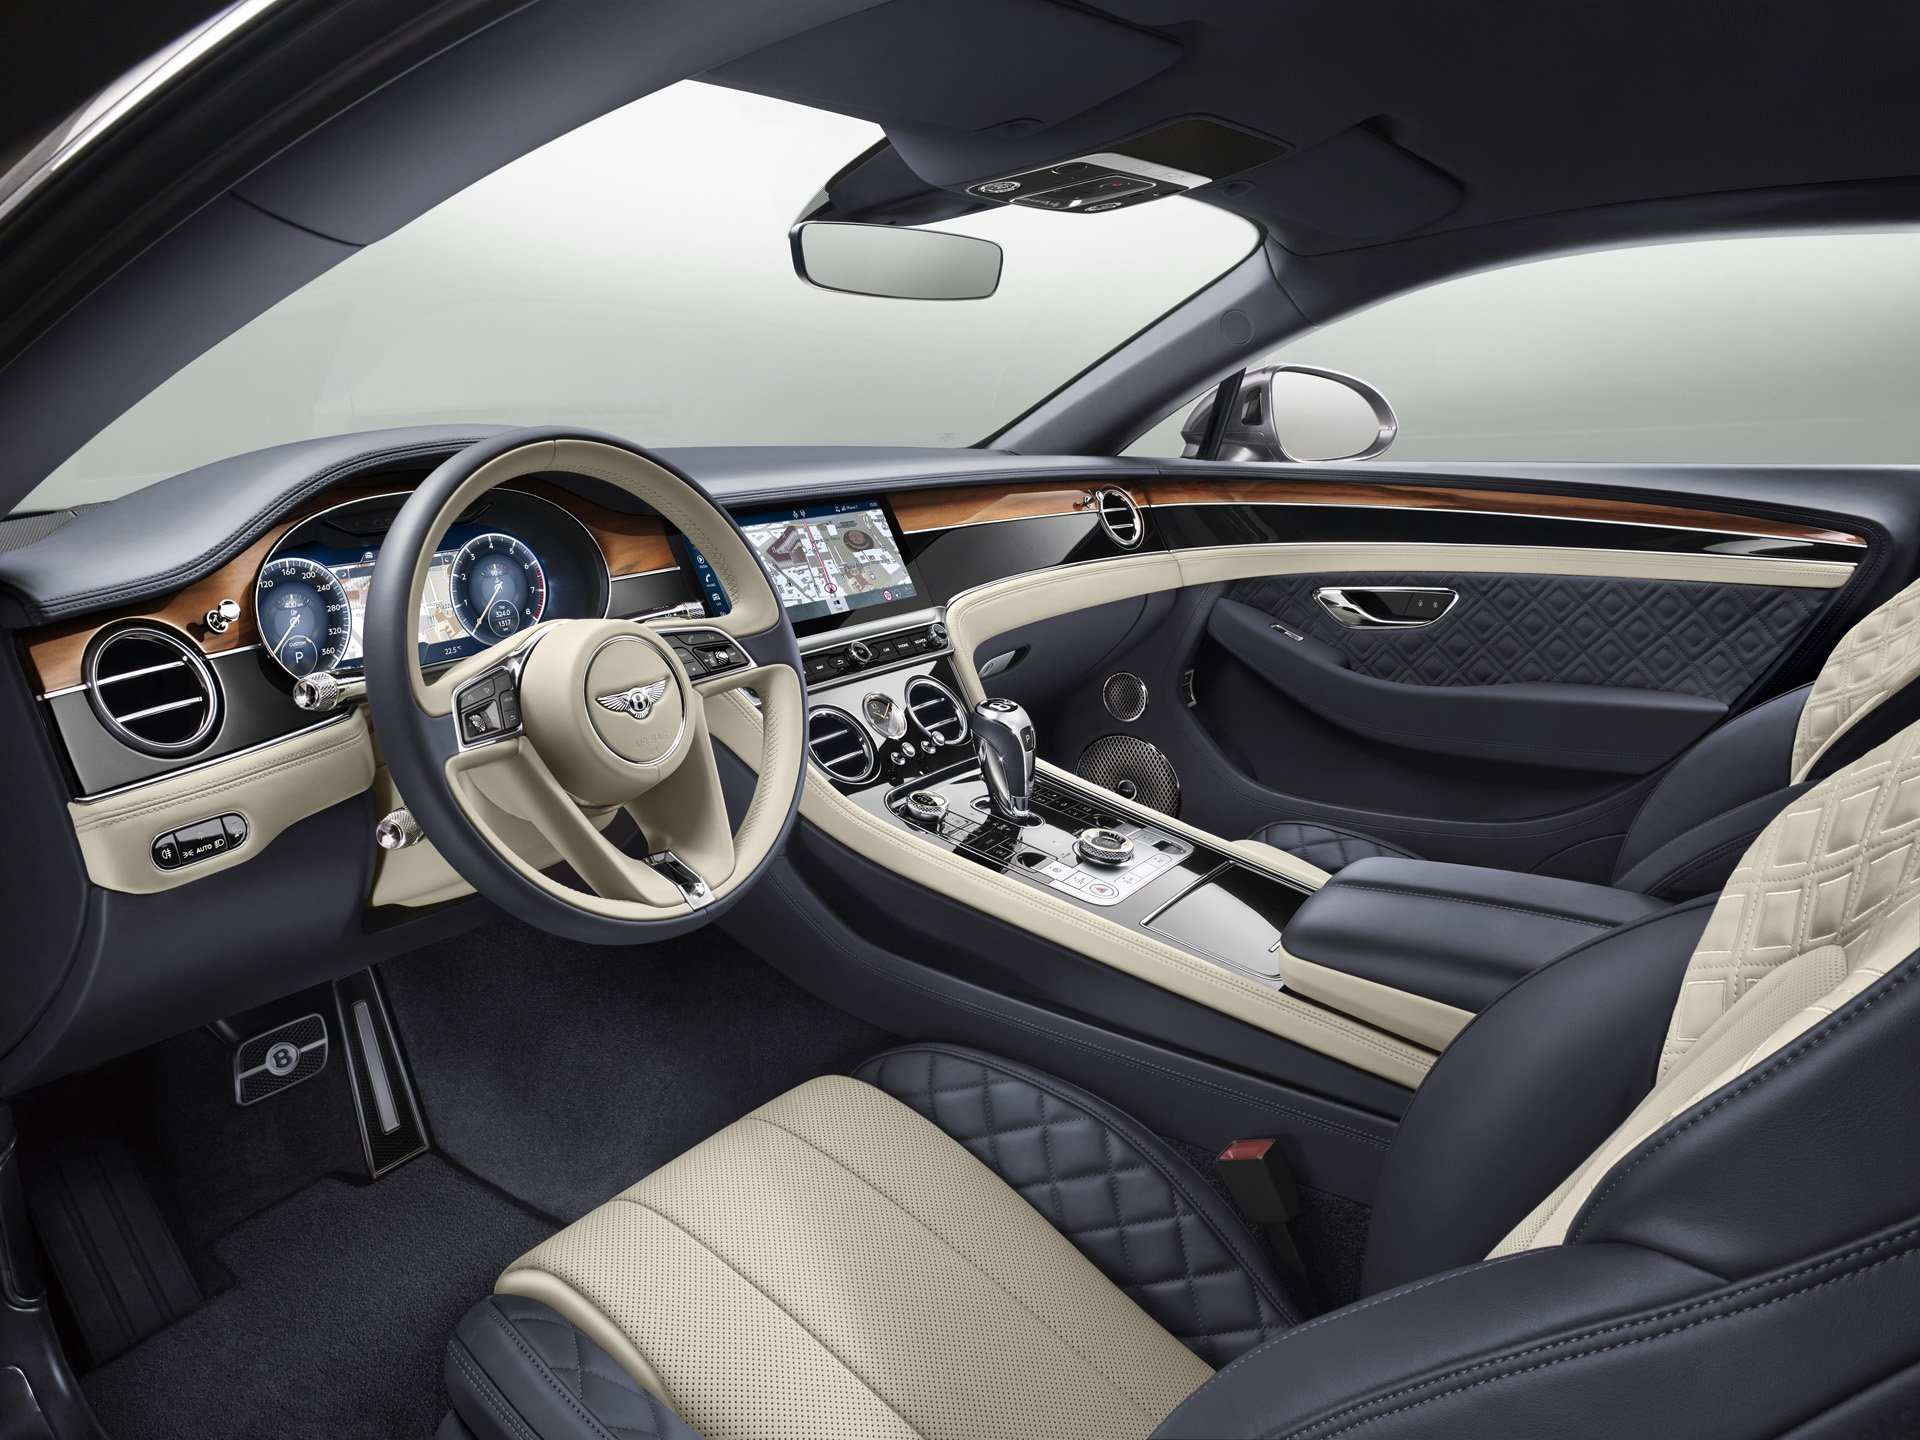 57 Concept of 2019 Bentley Flying Spur Price and Review by 2019 Bentley Flying Spur